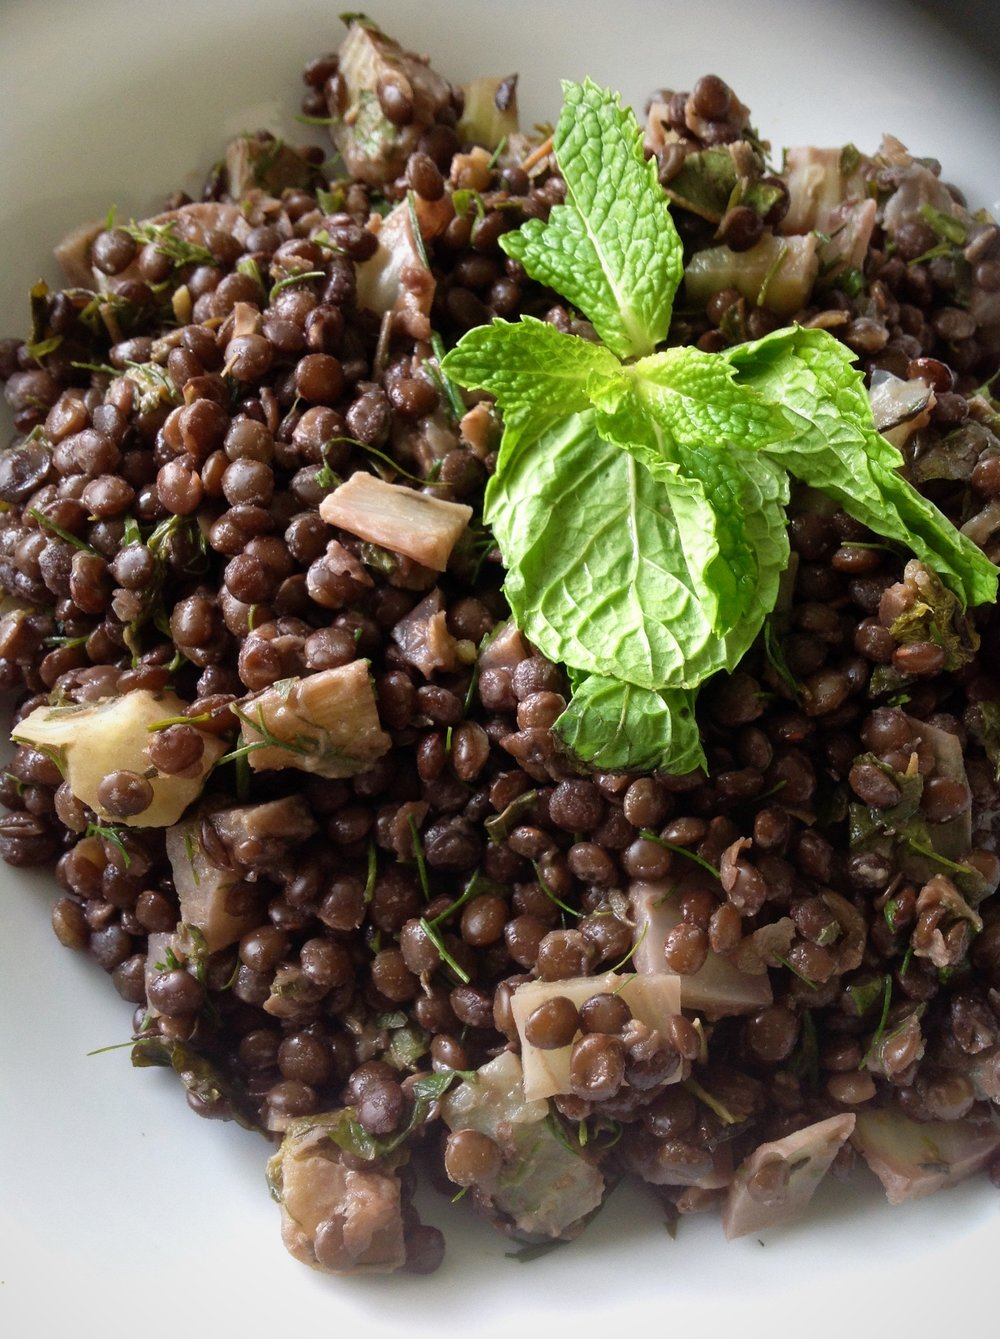 French Beluga Lentil Fennel Salad - Healthy, Plant-Based, Gluten-Free, Oil-free, Vegan